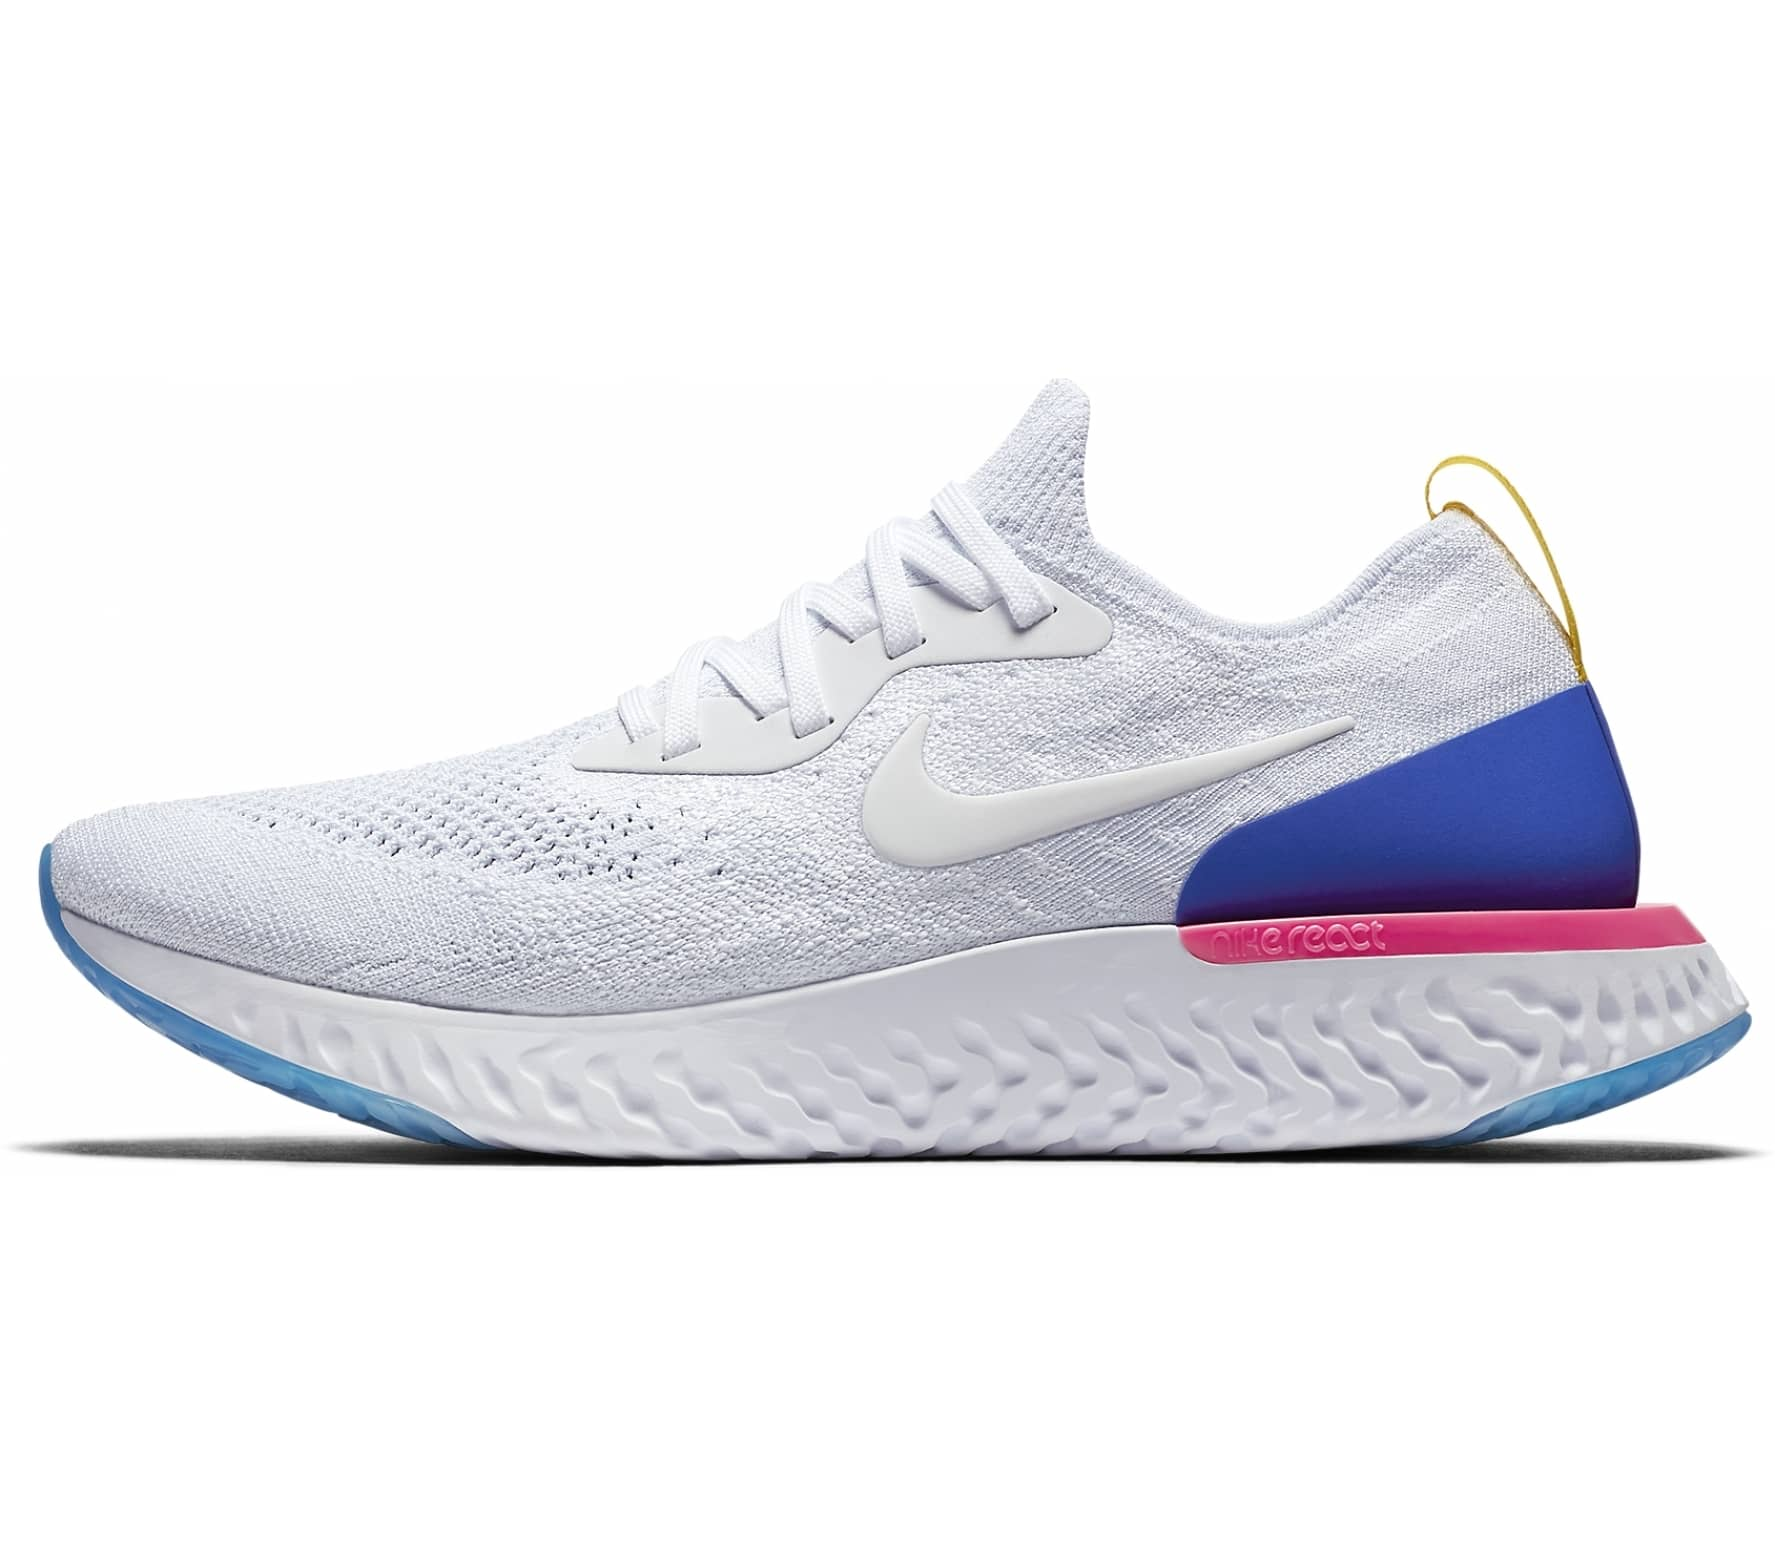 32ee42d7adf Nike - Epic React Flyknit men s running shoes (white) - buy it at ...